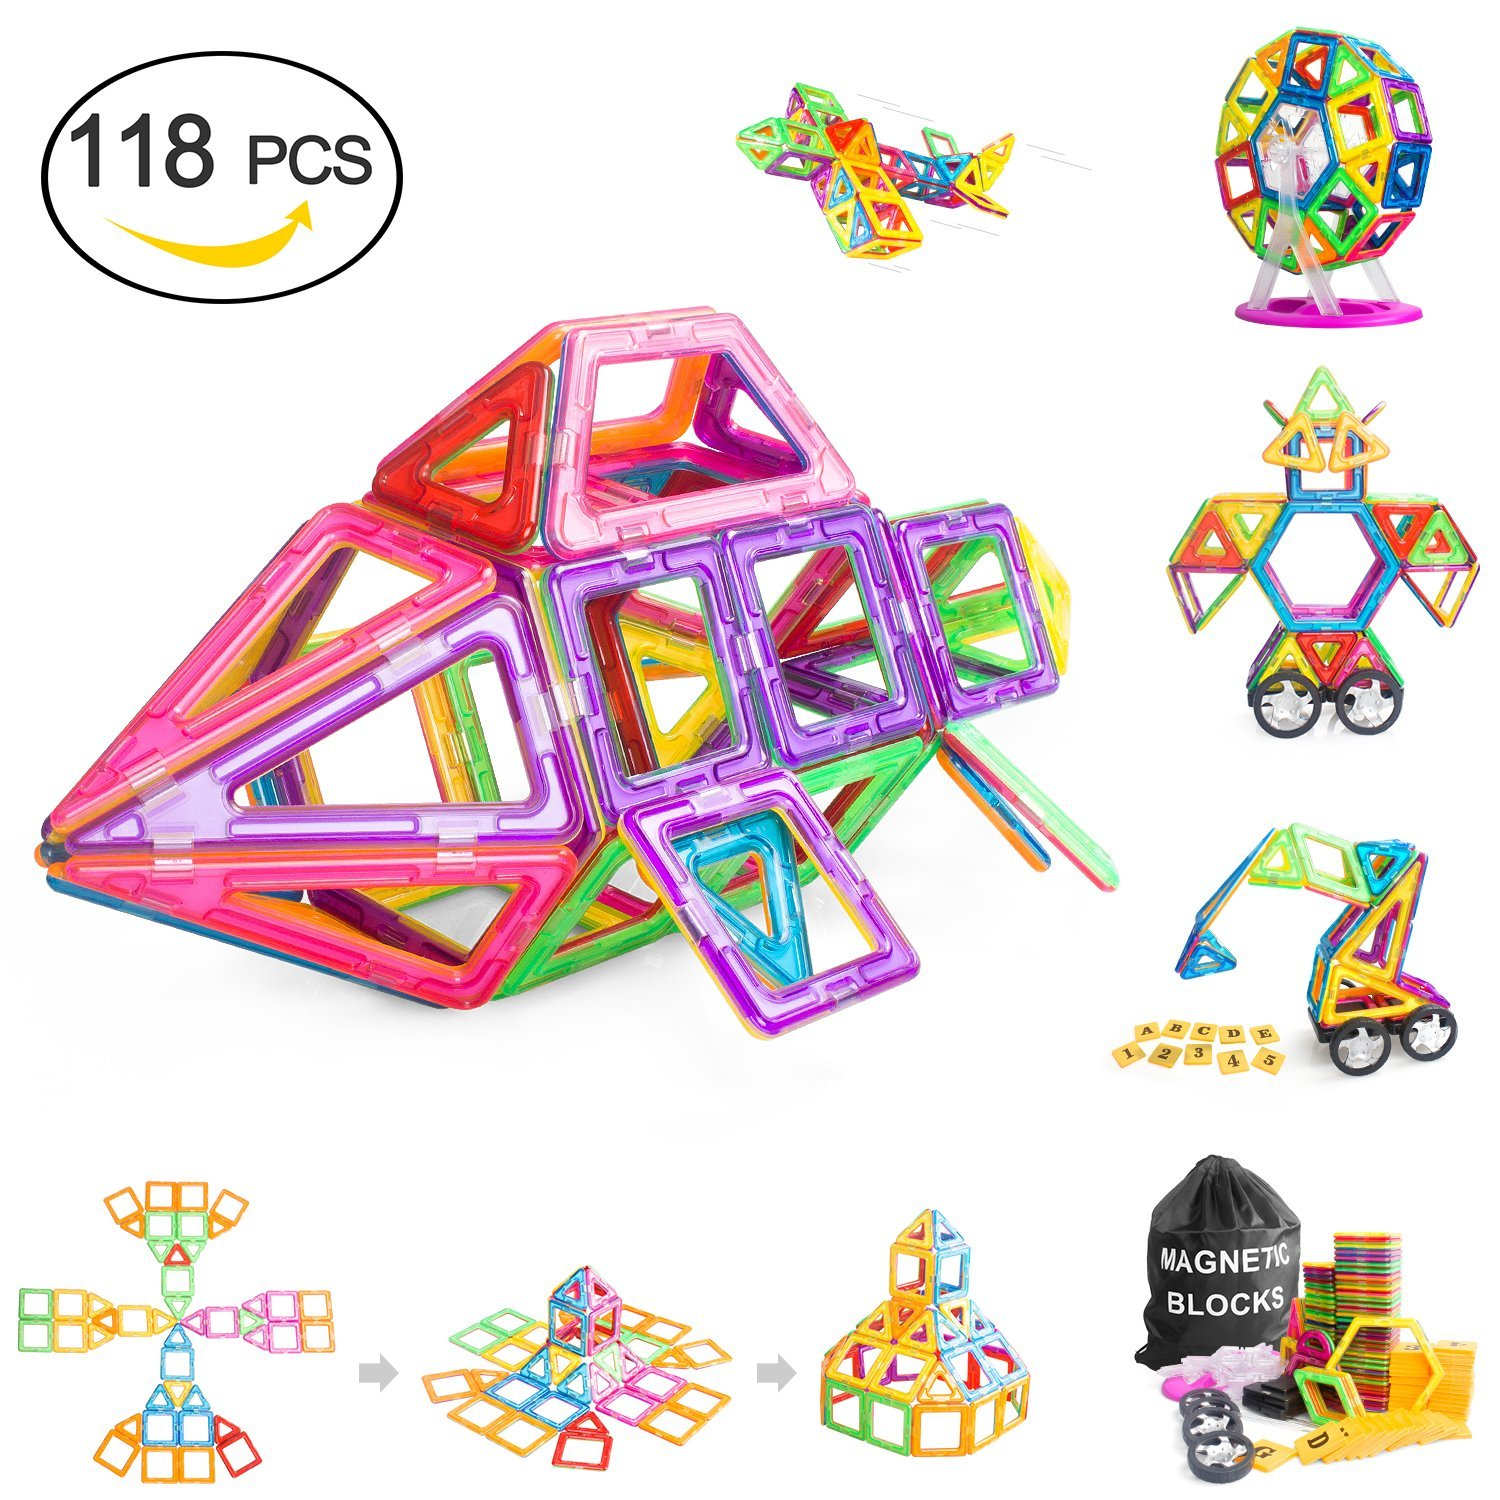 Magnetic Blocks, Magnetic Building Blocks 118 PCS, Magnetic Tiles for Kids, Magnetic Educational STEM Toys for 3, 4, 5+ Year Old Boys and Girls Review